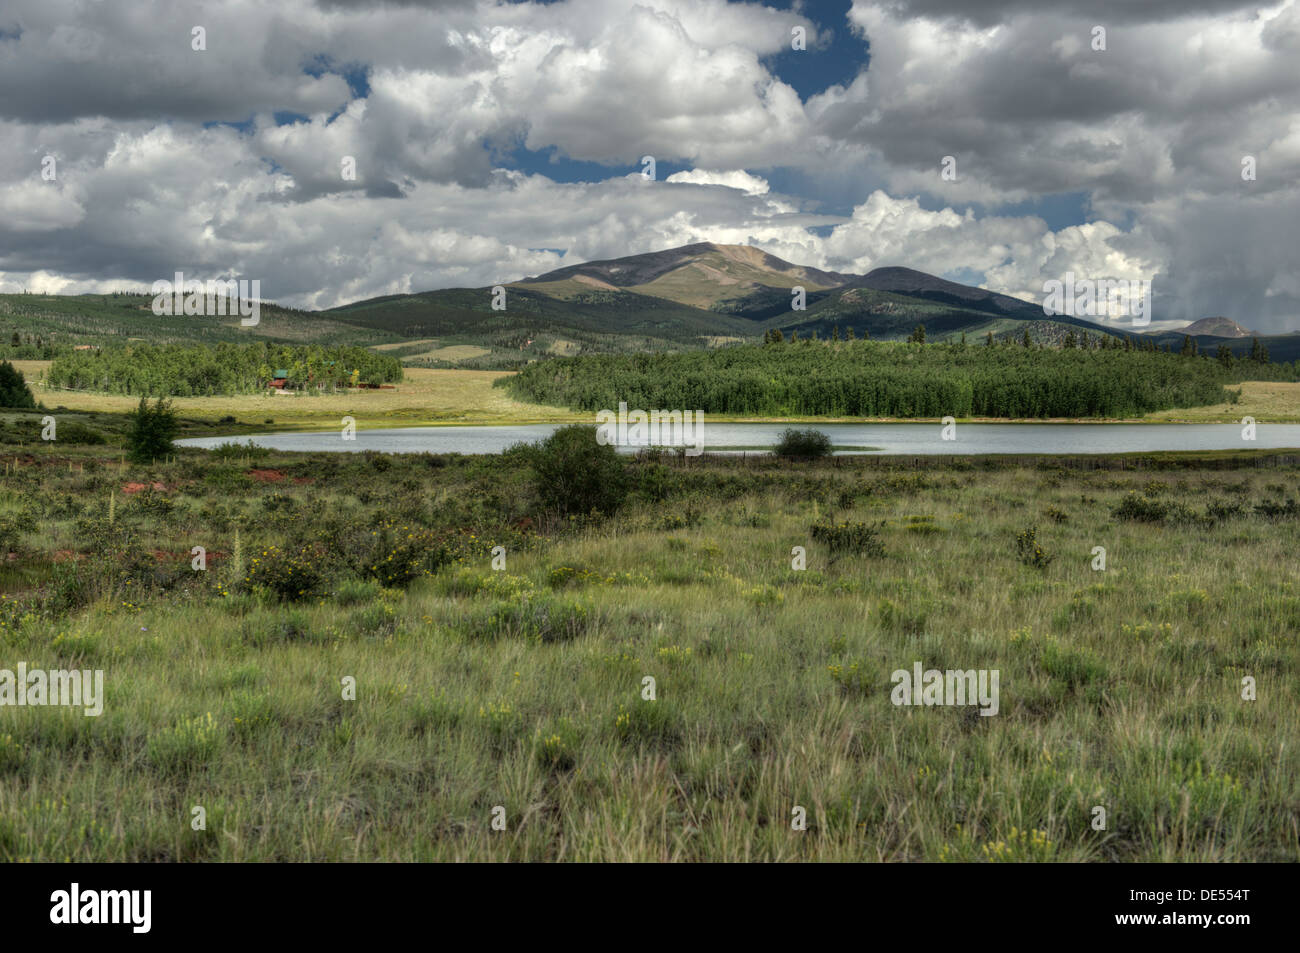 This idyllic view of Mt. Silverheels greets the traveler on US Hwy 285 just outside the town of Fairplay, Colorado. - Stock Image